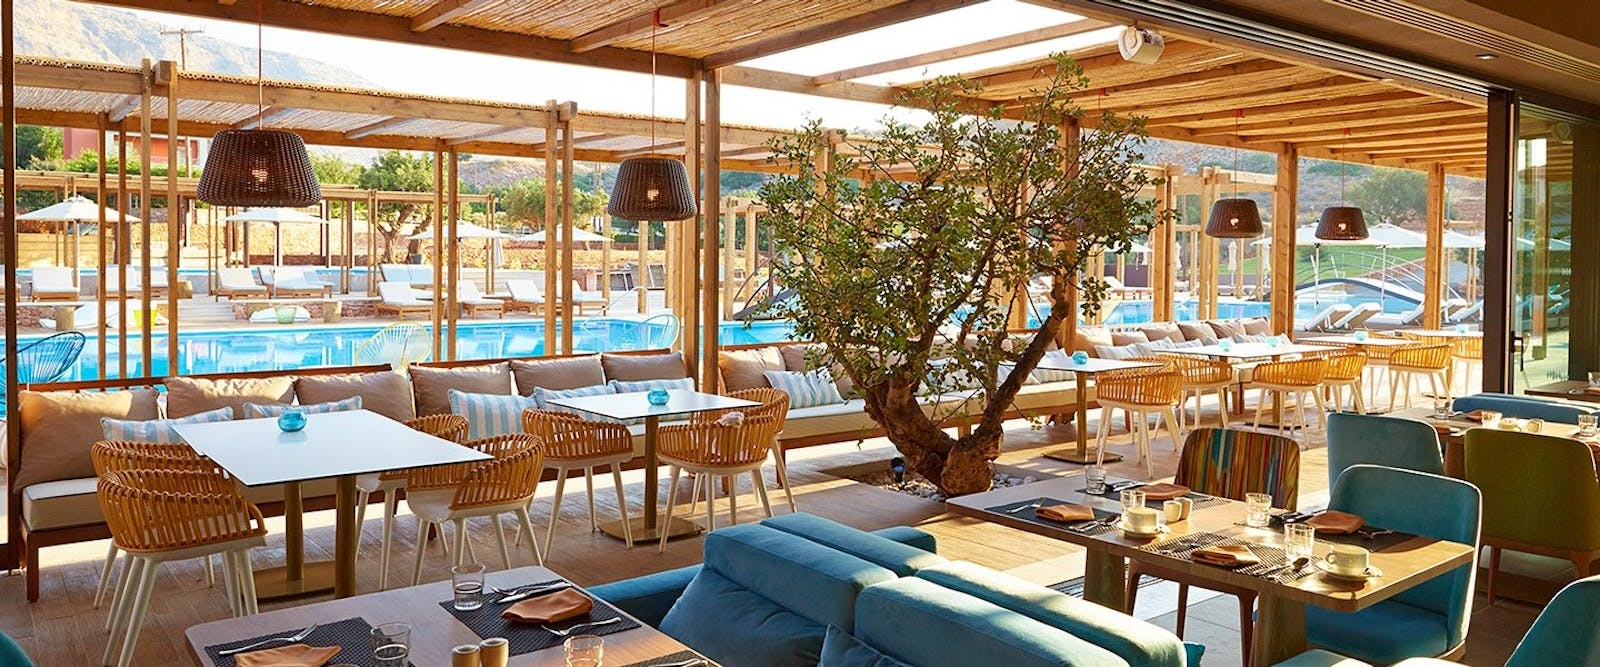 Restaurant at Domes of Elounda, Autograph Collection, Crete, Greece